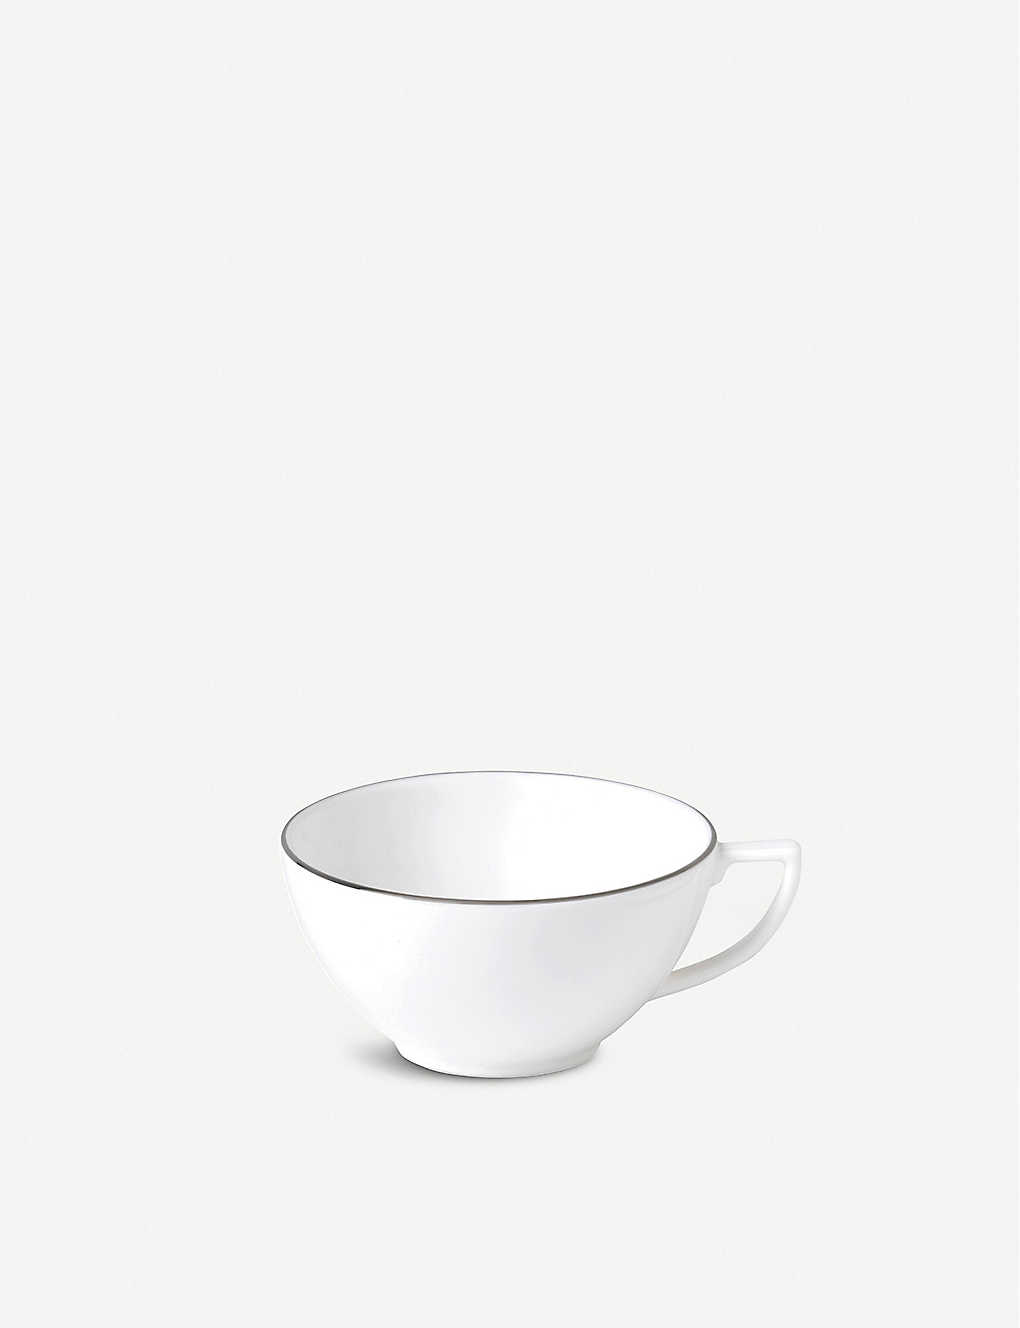 JASPER CONRAN @ WEDGWOOD: Platinum large teacup